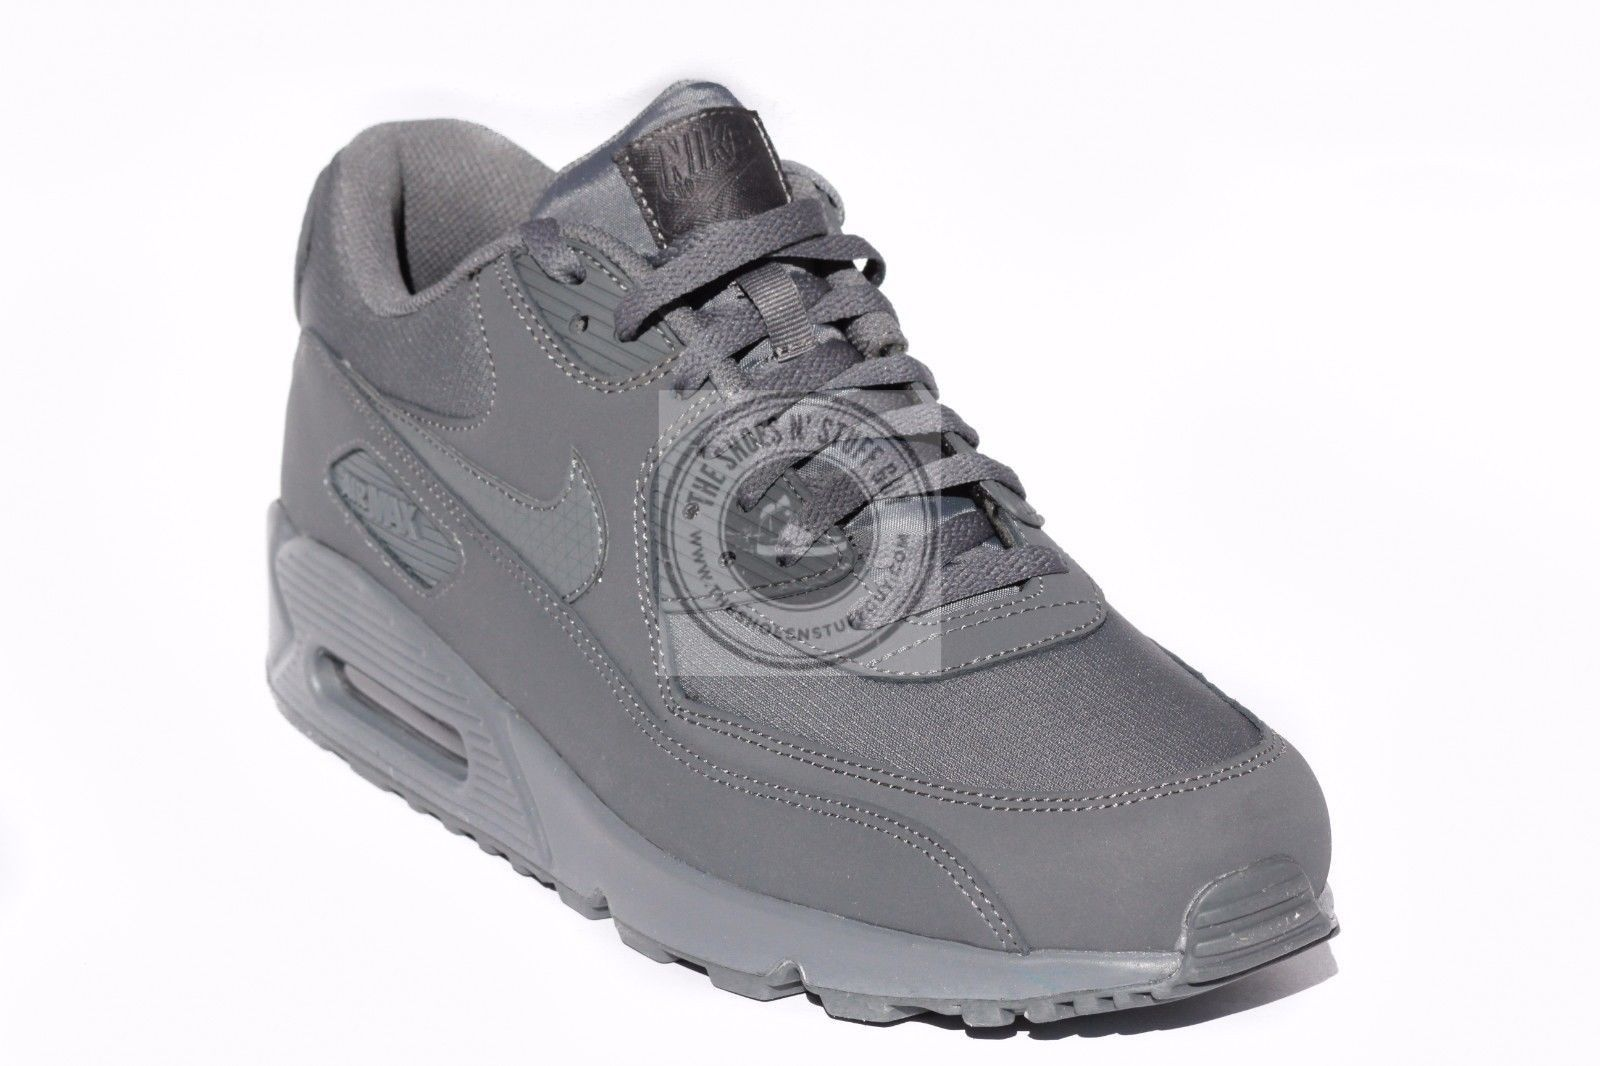 d7fc9613e17a New Men s Nike Air Max 90 Leather Running Shoes Dark Gray 537384 051 Size  12.5